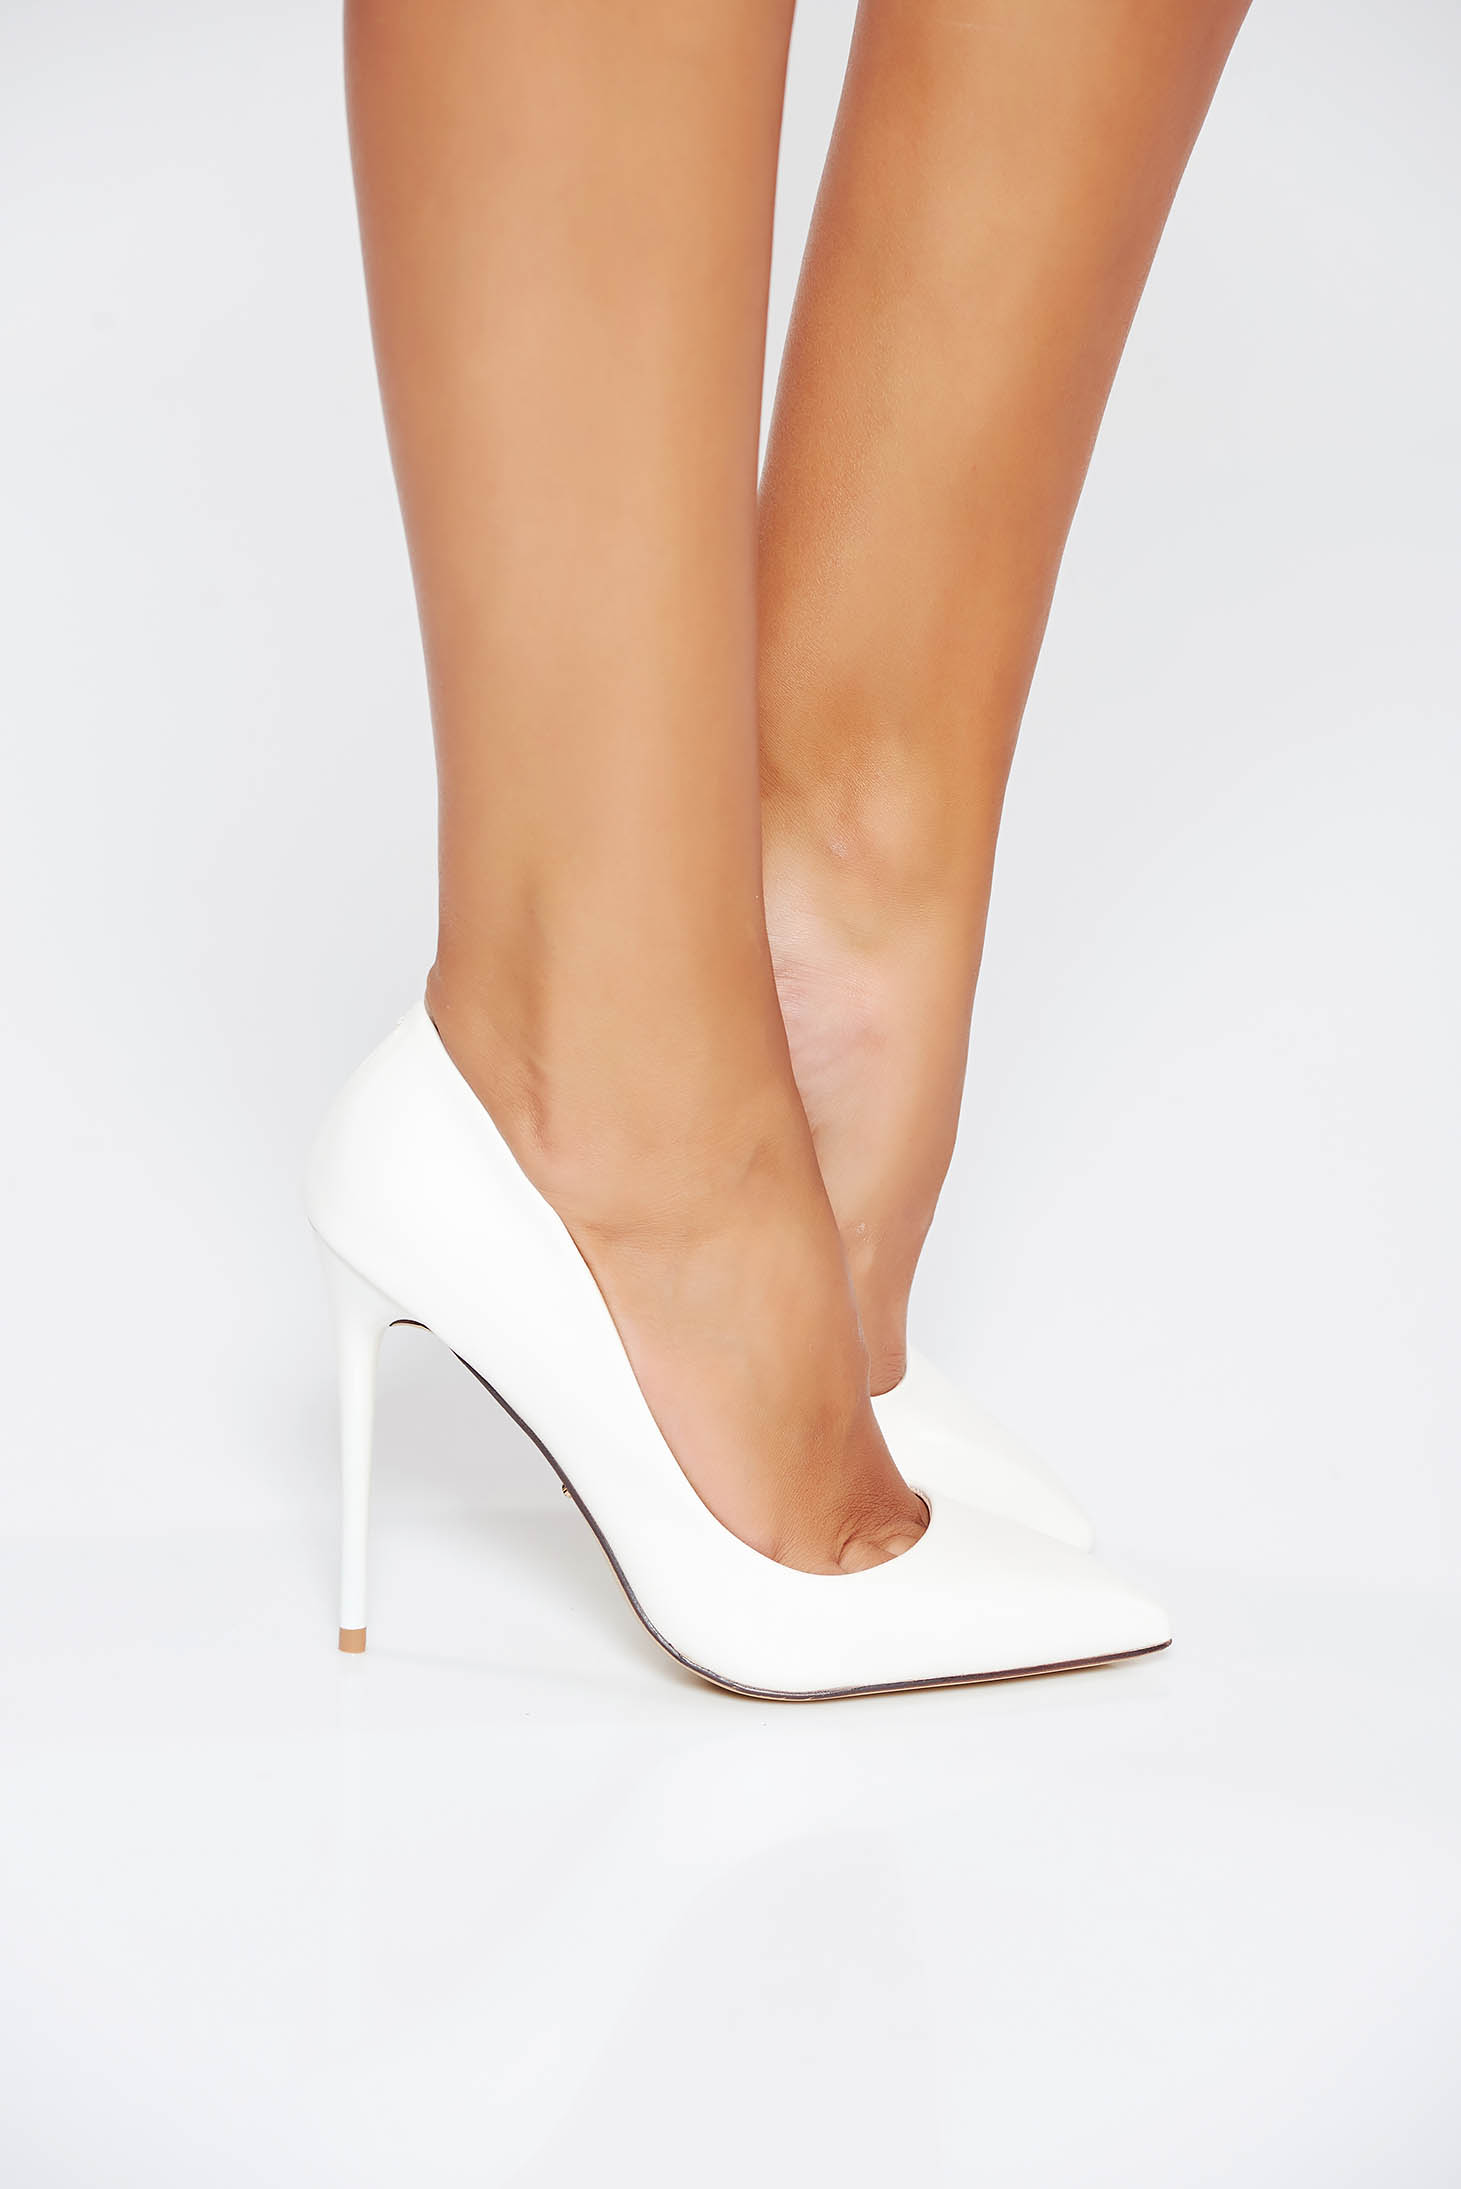 Office with high heels from ecological leather white stiletto shoes